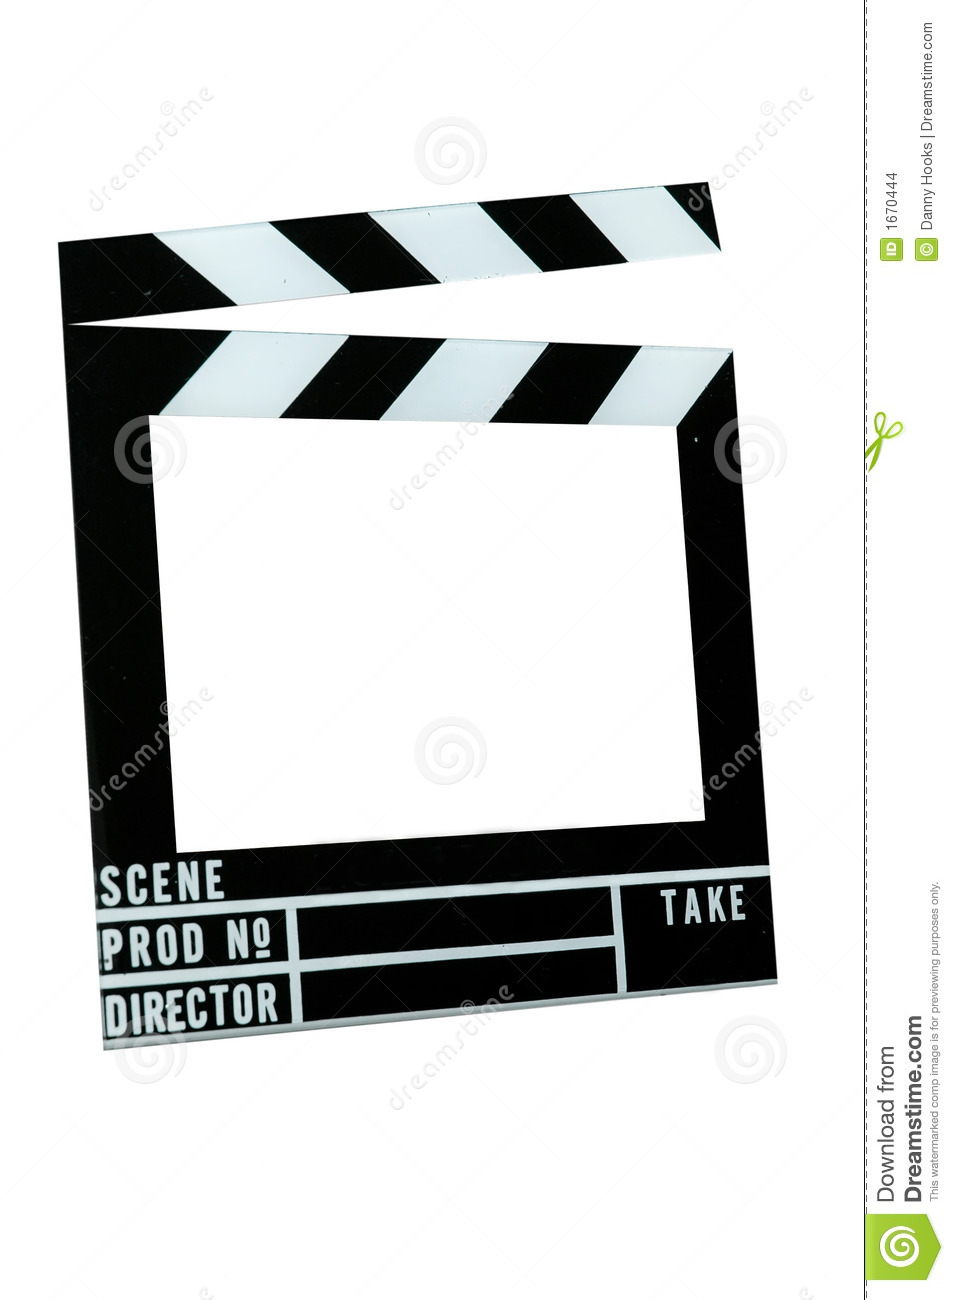 Movie slate board frame. Isolated image with clipping path.